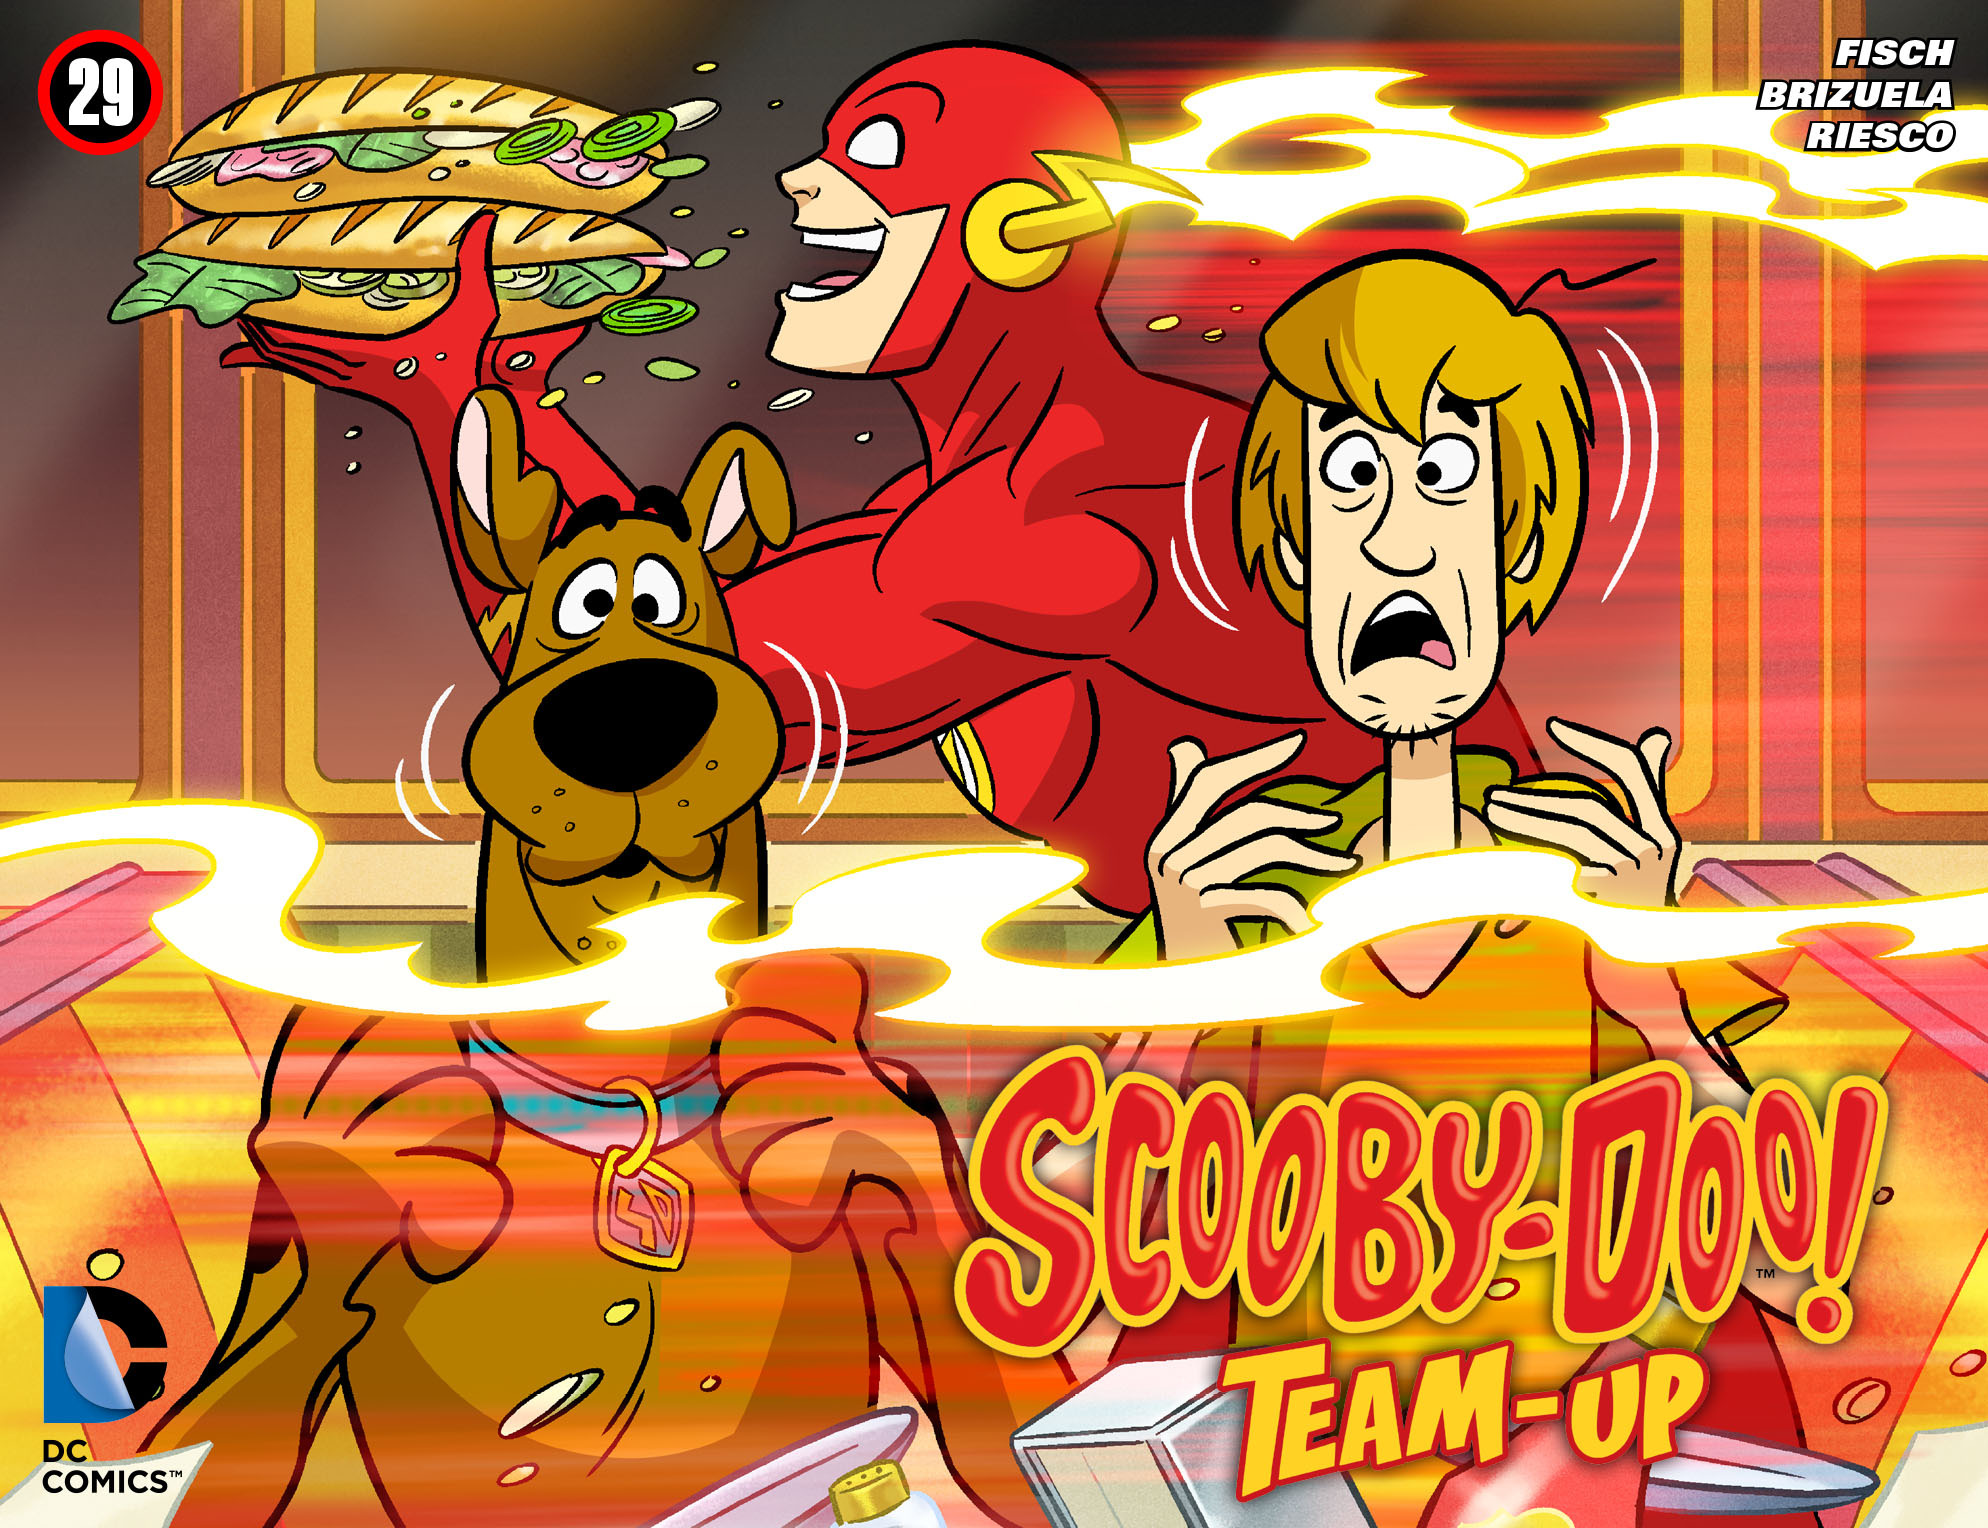 Read online Scooby-Doo! Team-Up comic -  Issue #29 - 1